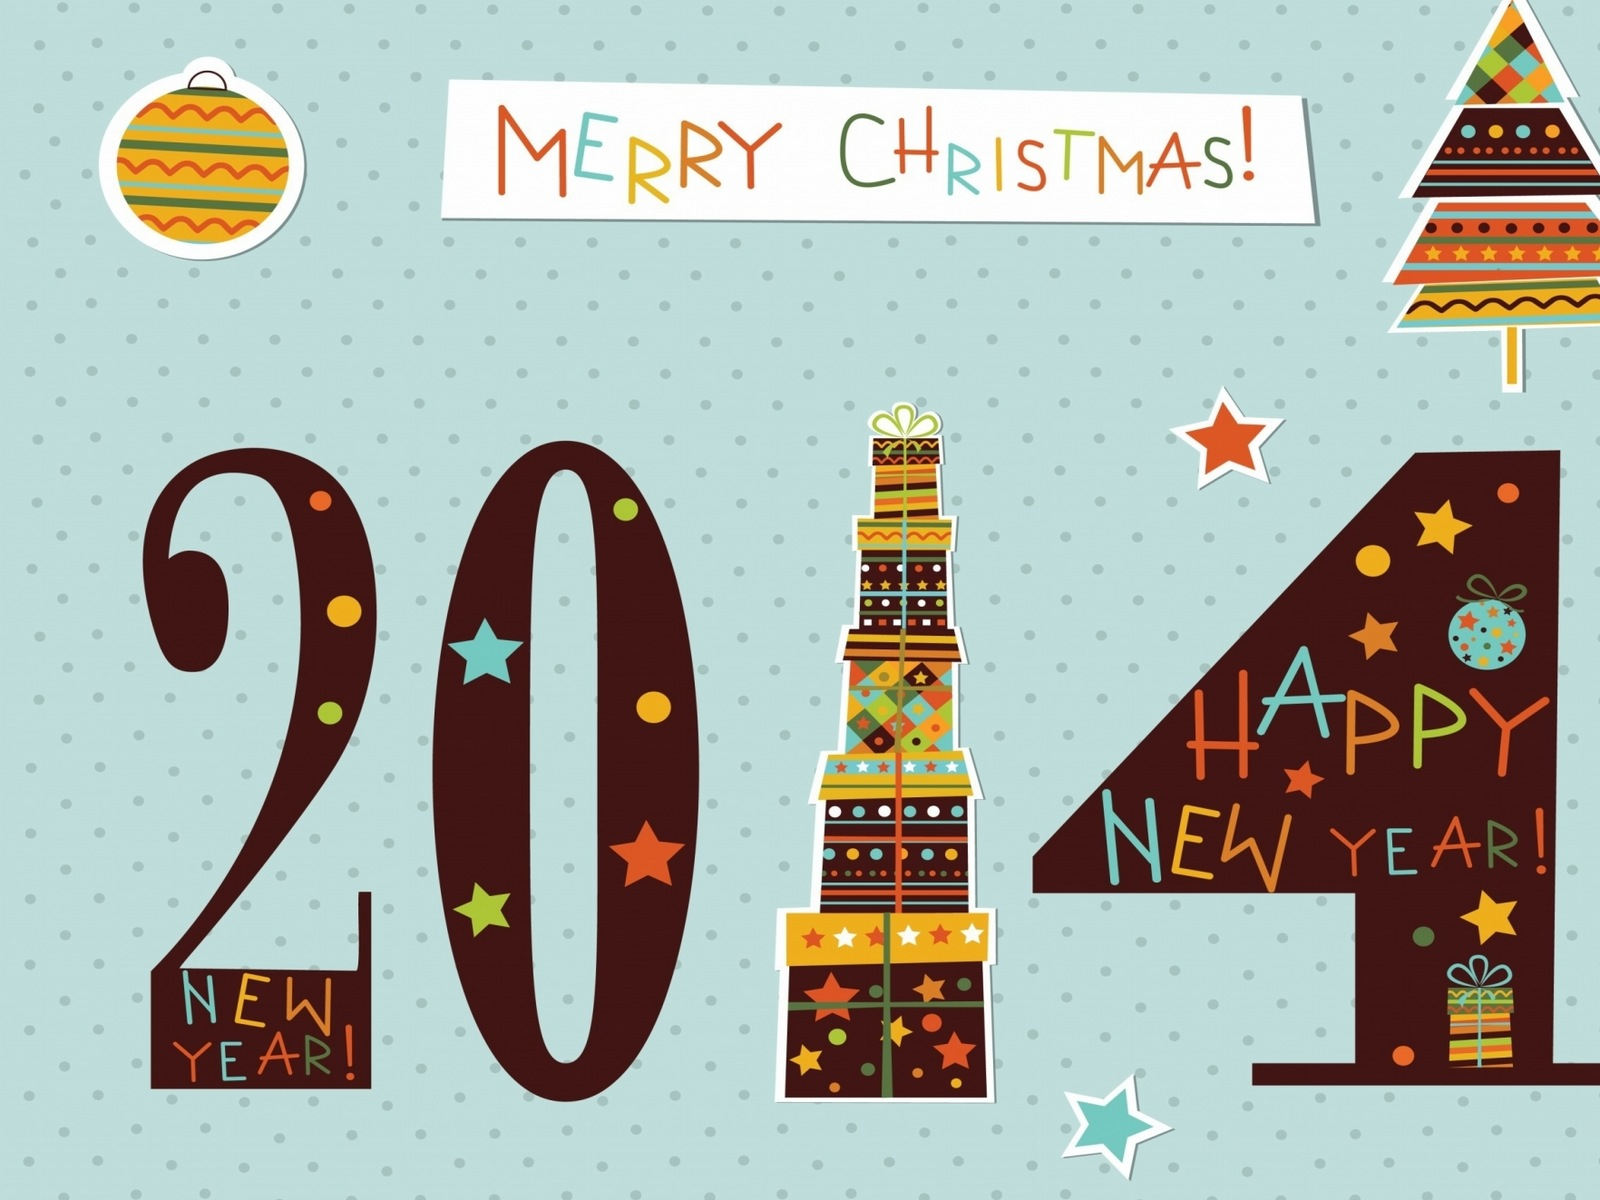 Merry Christmas And Happy New Year 2014 Wallpaper 1600x1200